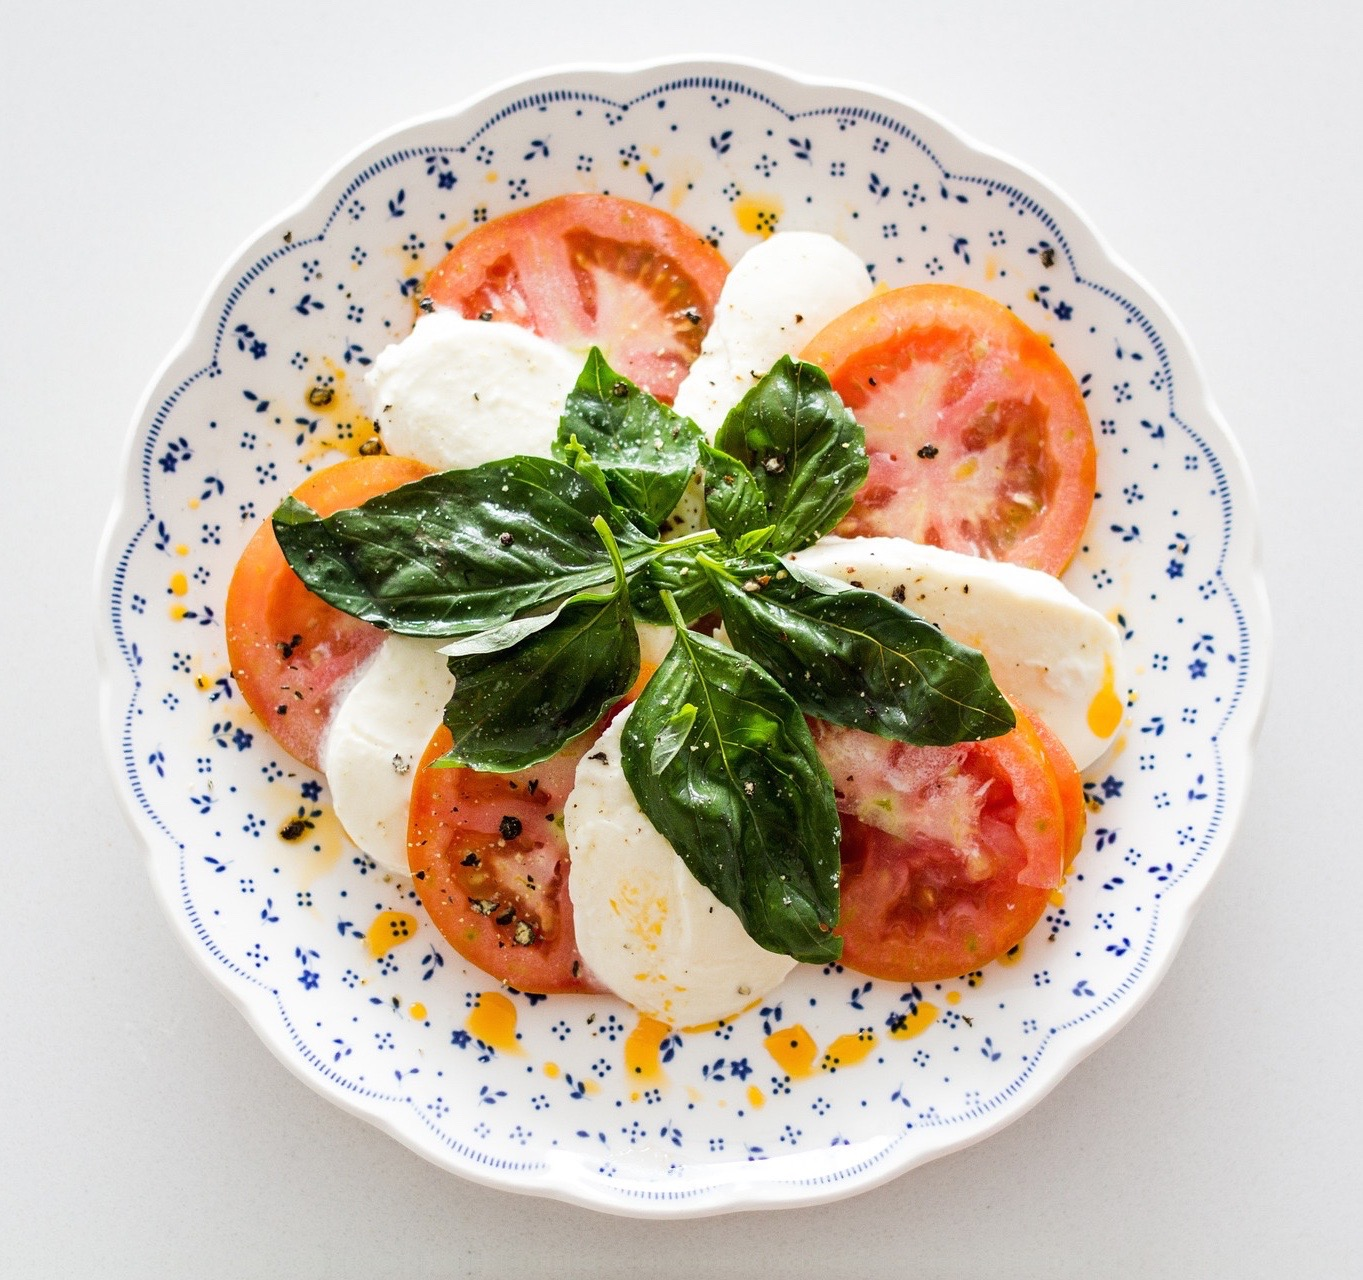 Caprese | Image courtesy of Pixabay, St. George News